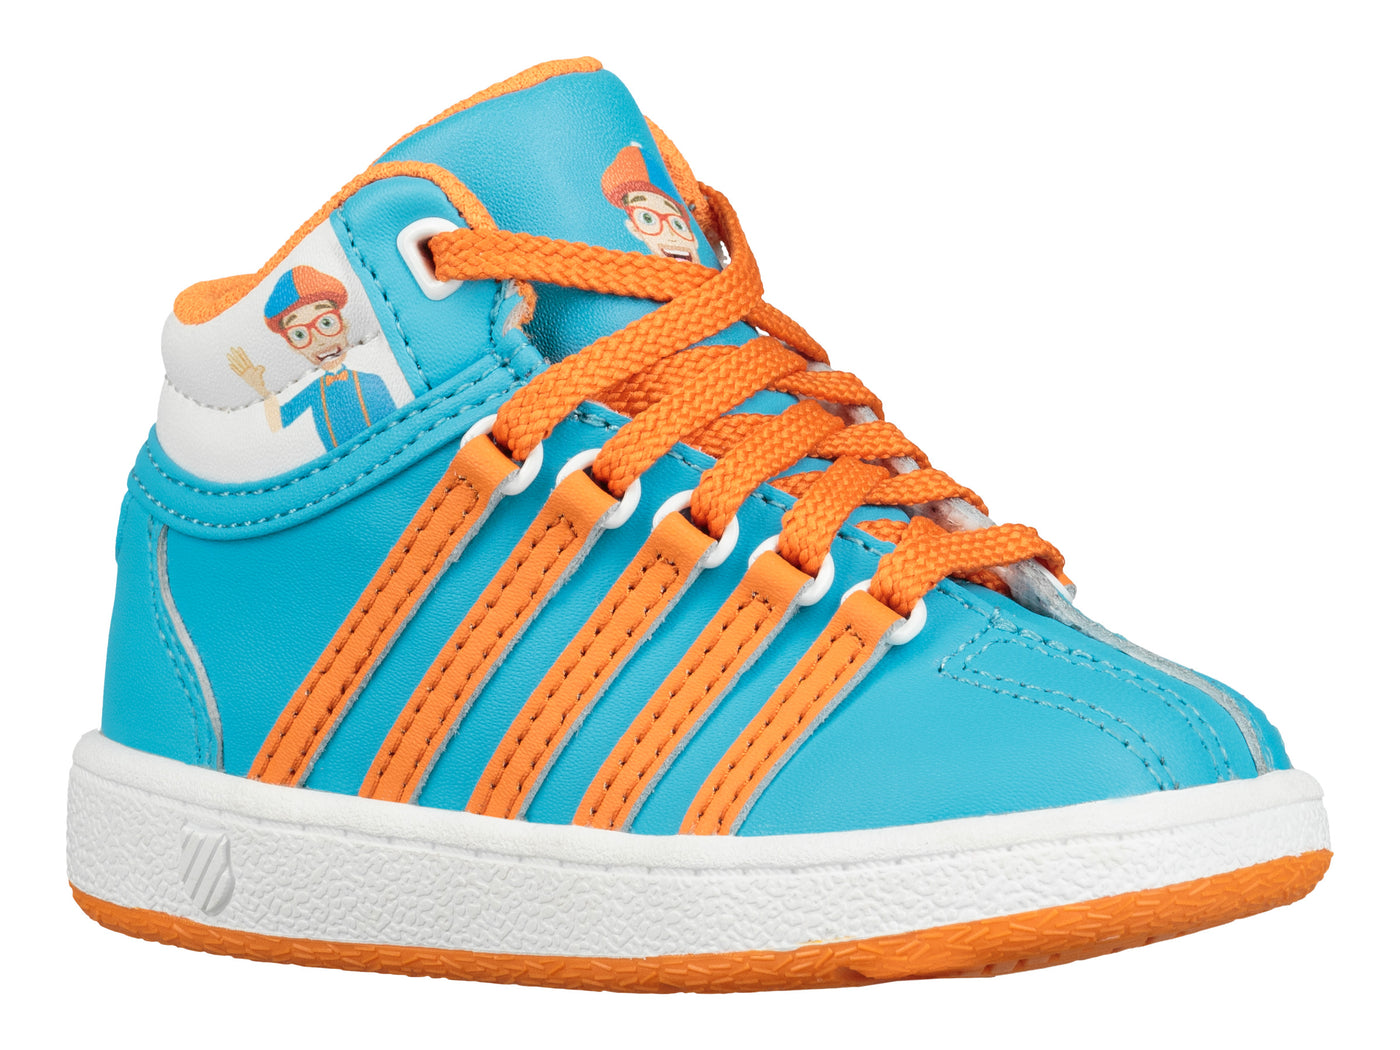 check out 87730 516c1 K-Swiss Shoes | The Official US Online Shop